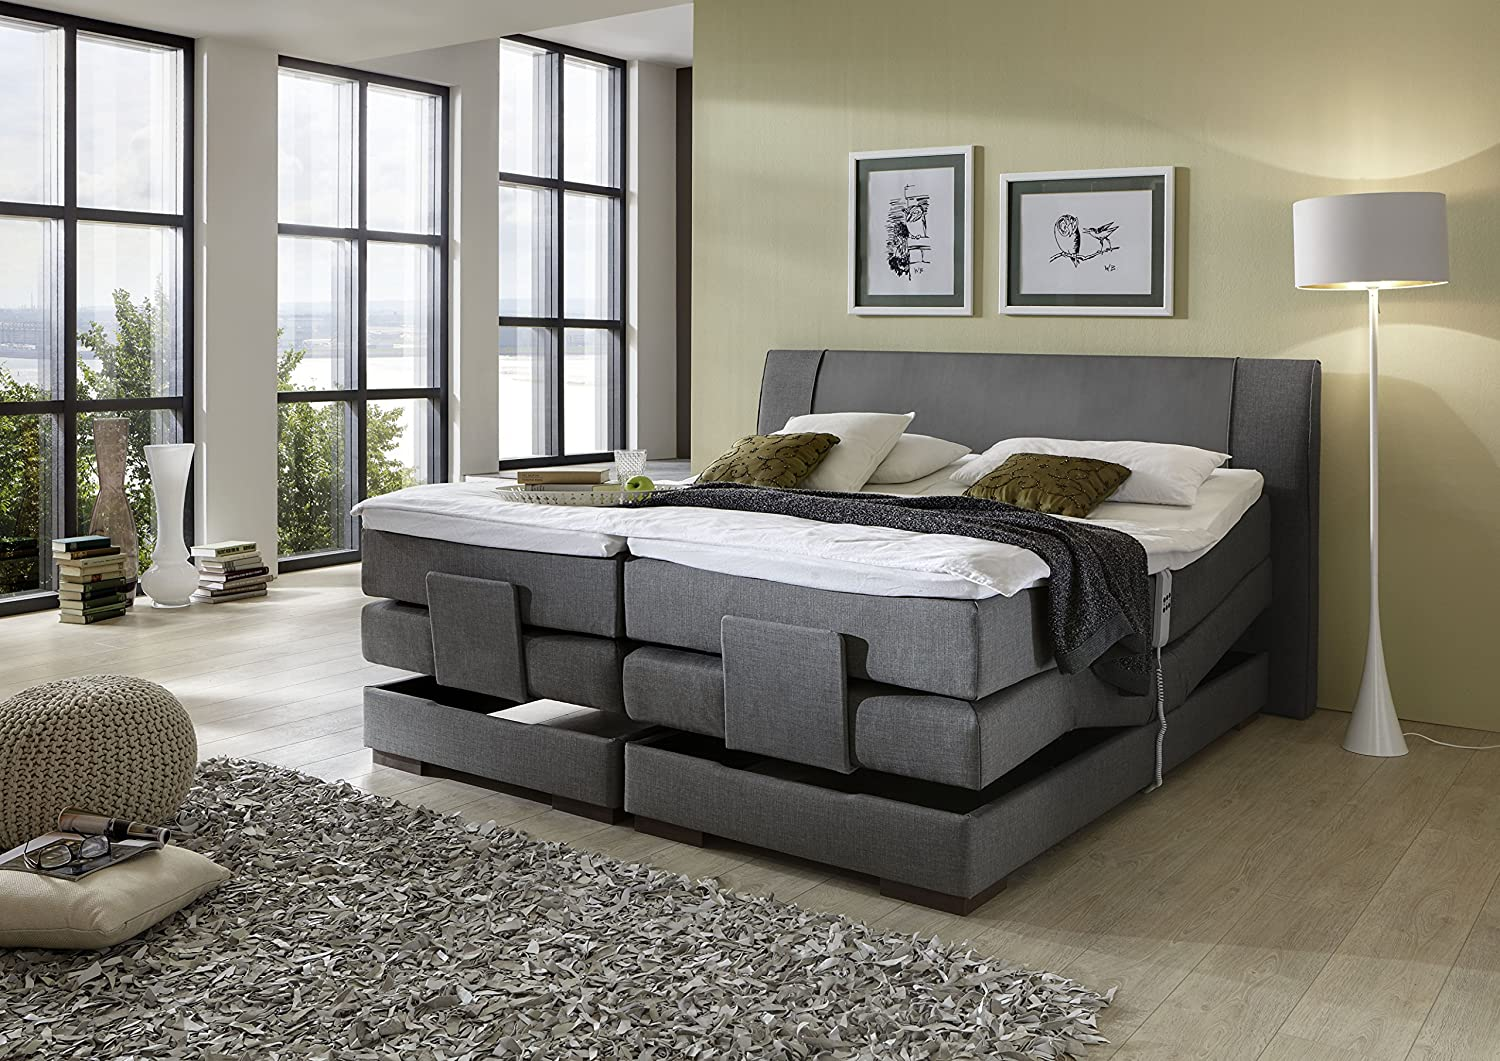 brisbane plus inkl motor boxspringbett hotelbett. Black Bedroom Furniture Sets. Home Design Ideas